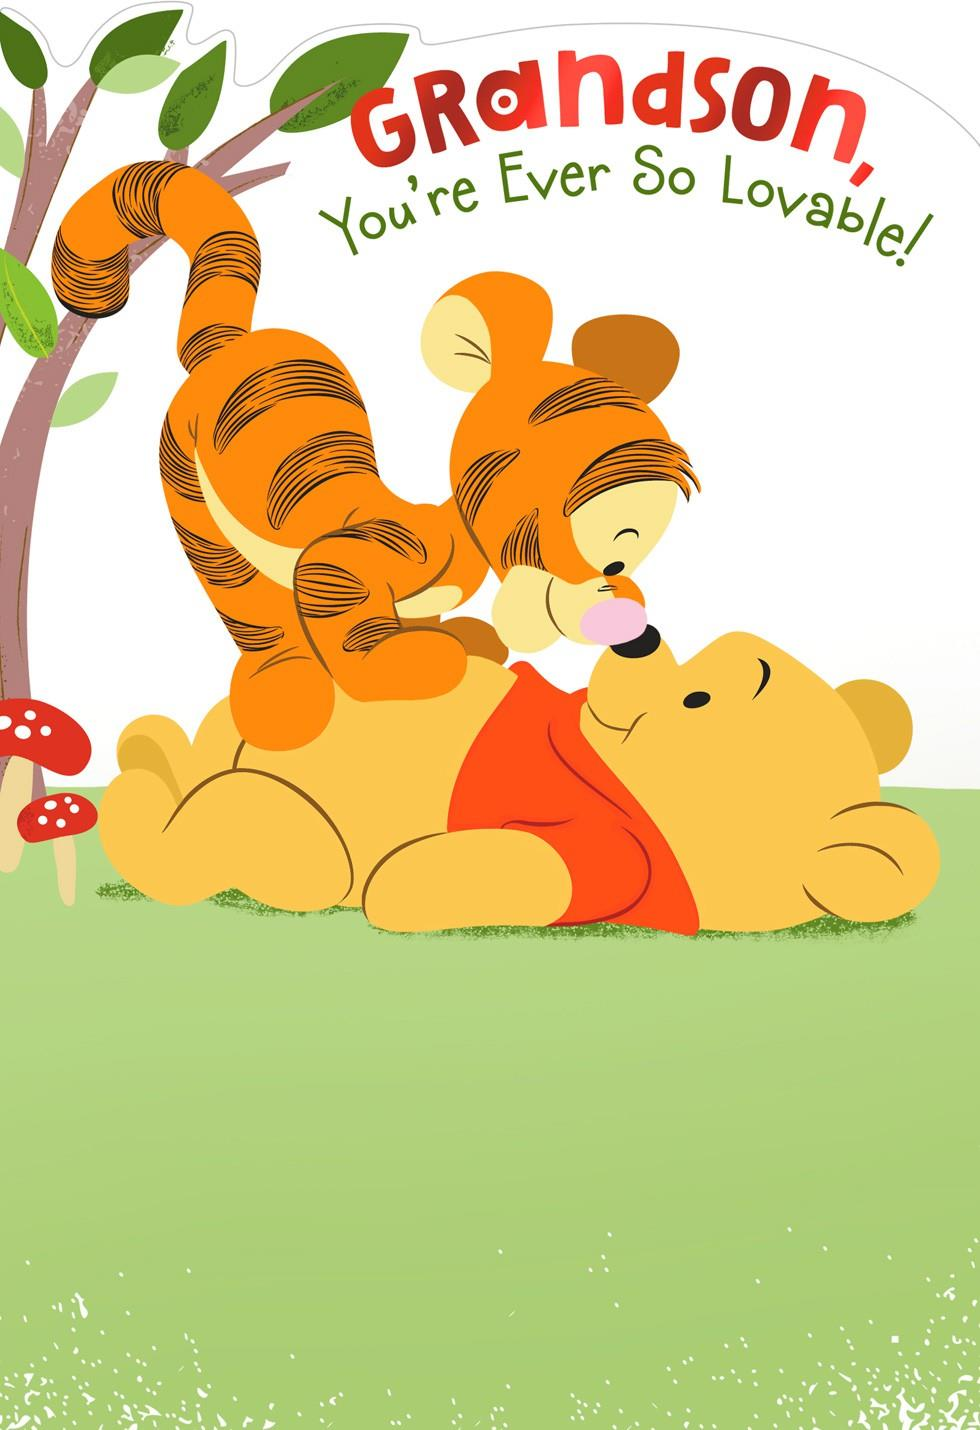 Winnie the Pooh Birthday Card for Grandson Greeting Cards Hallmark – Happy Birthday Card Hallmark